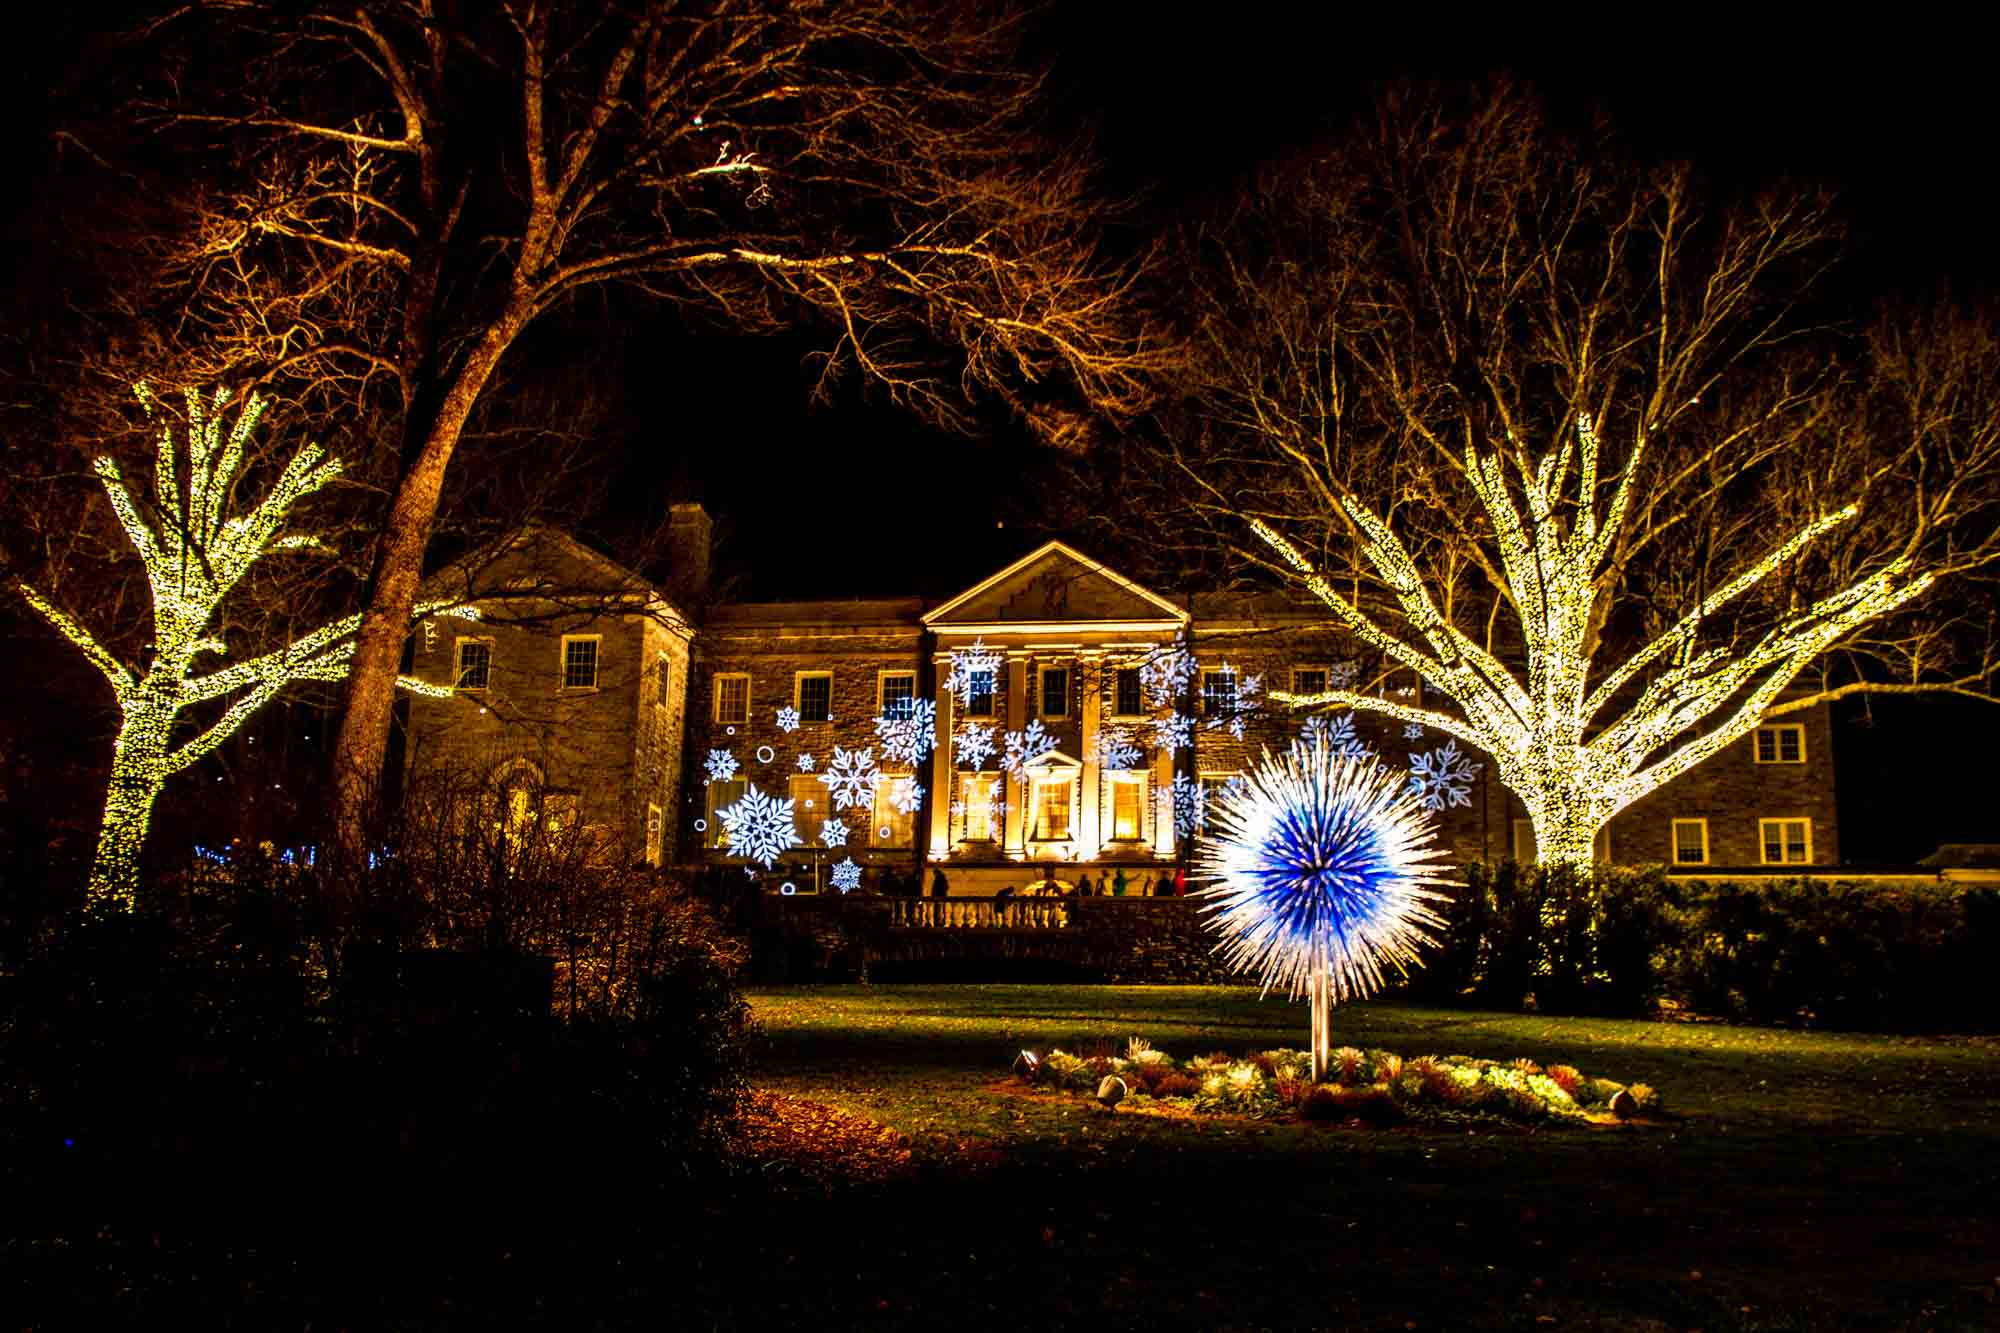 Snowflake lights projected on a mansion facade beside lit up trees and an illuminated blue and white sculpture